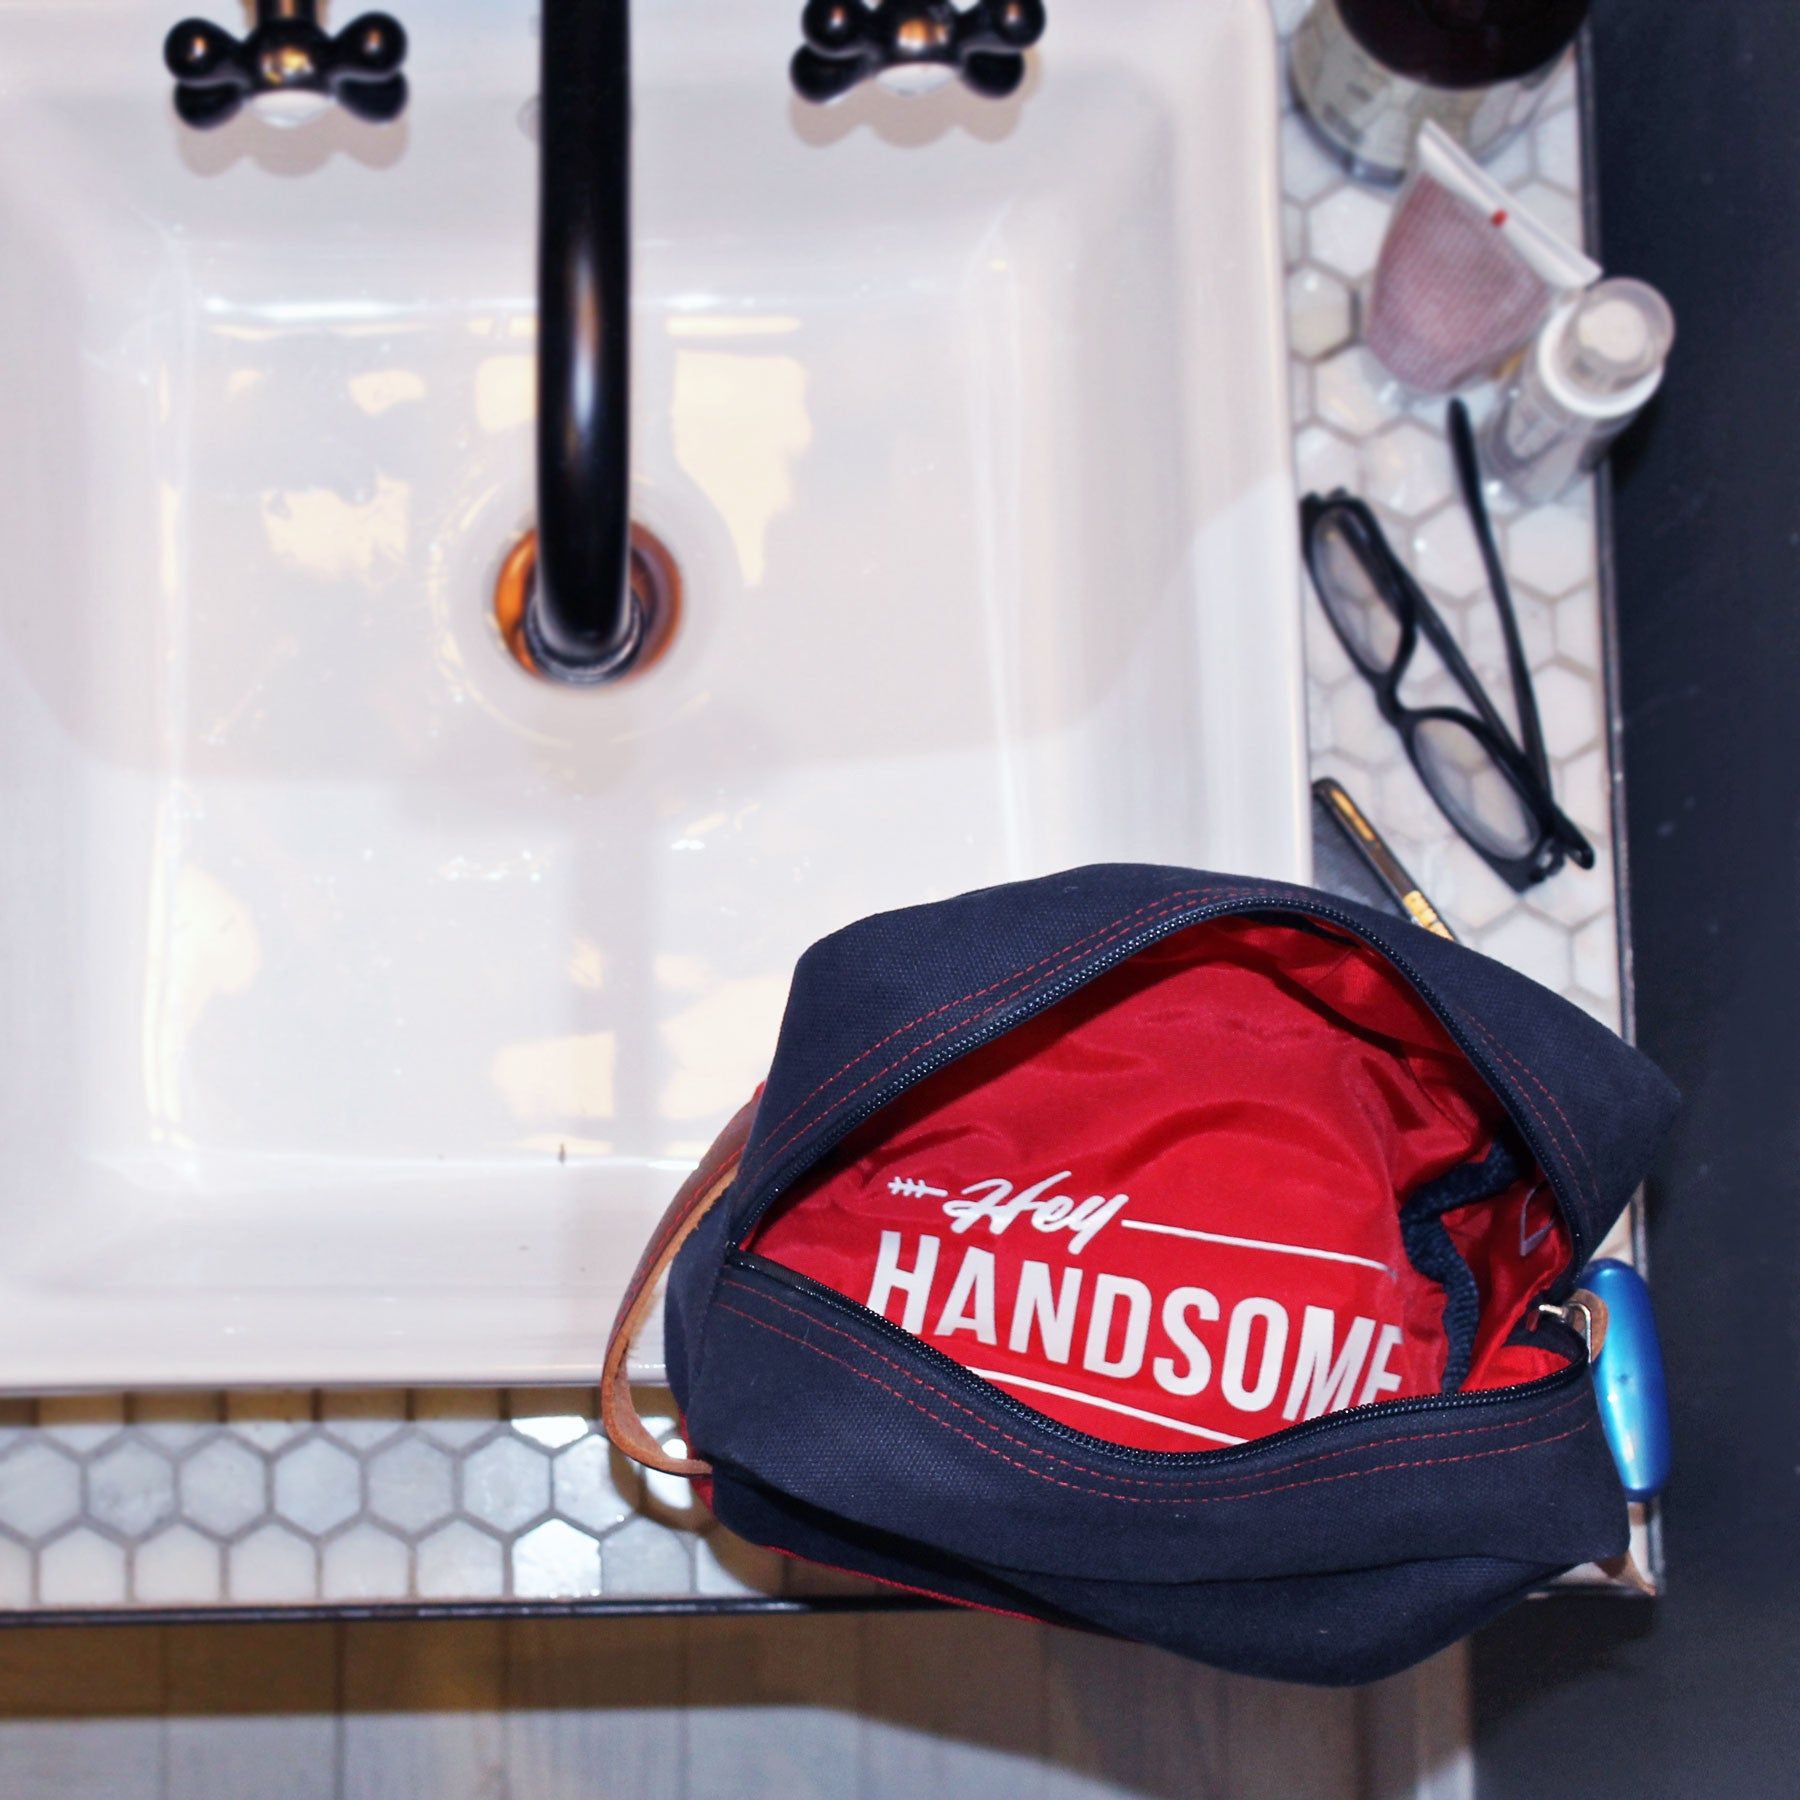 Hey Handsome Shaving kit Bag Navy